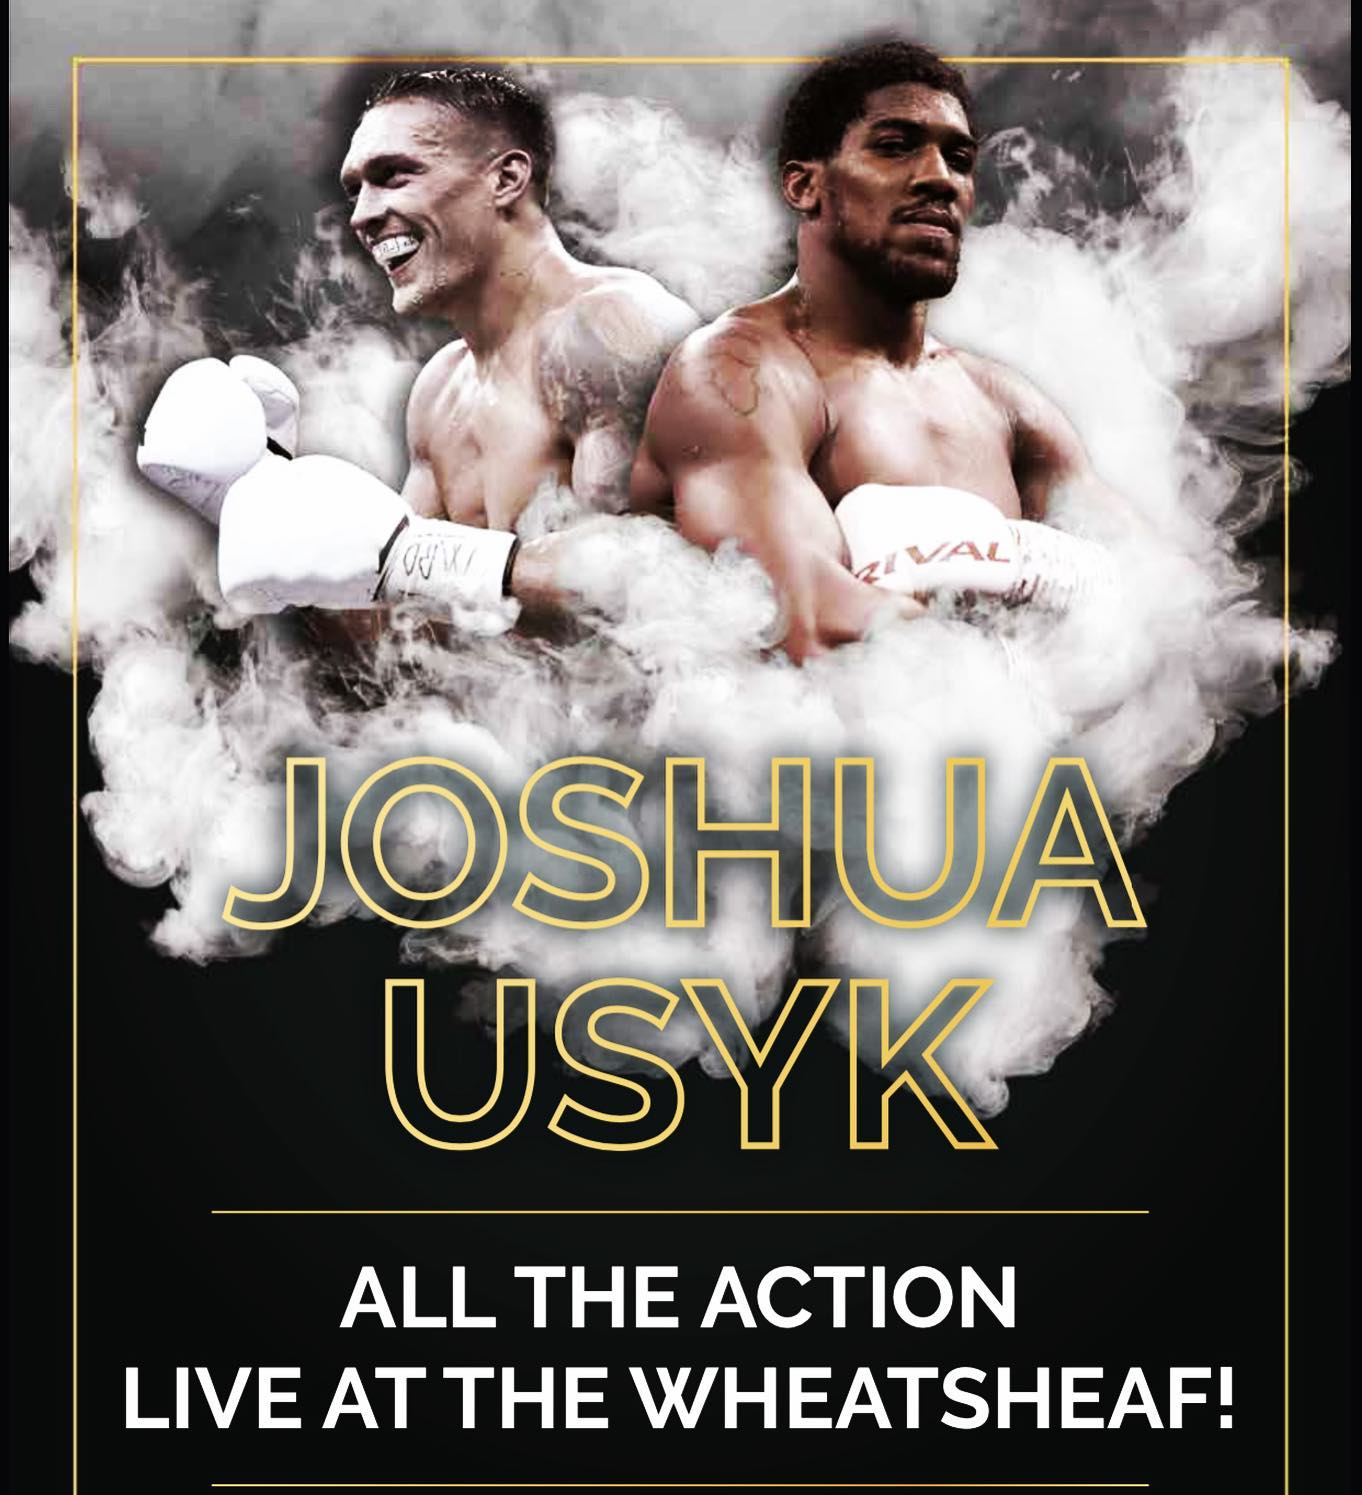 It's one week until the big fight! 🥊   The unified heavyweight champion of the world Anthony Joshua takes on the undefeated Oleksandr Usyk!   We'll be showing the fight in our private room and it's a ticket only event!   Tickets are £25 and include a seat with a view of the fight and a £20 tab for food and drinks  Tickets are limited to seats so early booking is recommended to avoid disappointment  Link to book in Bio  #AJ #Boxing #tooting #TootingBec #FightNight #DingDing #Ring #Pub #Sport #Beer #Burger #Pizza #BoxOffice #Wheatsheaf #SW17 #Live #GlovesOn #booking